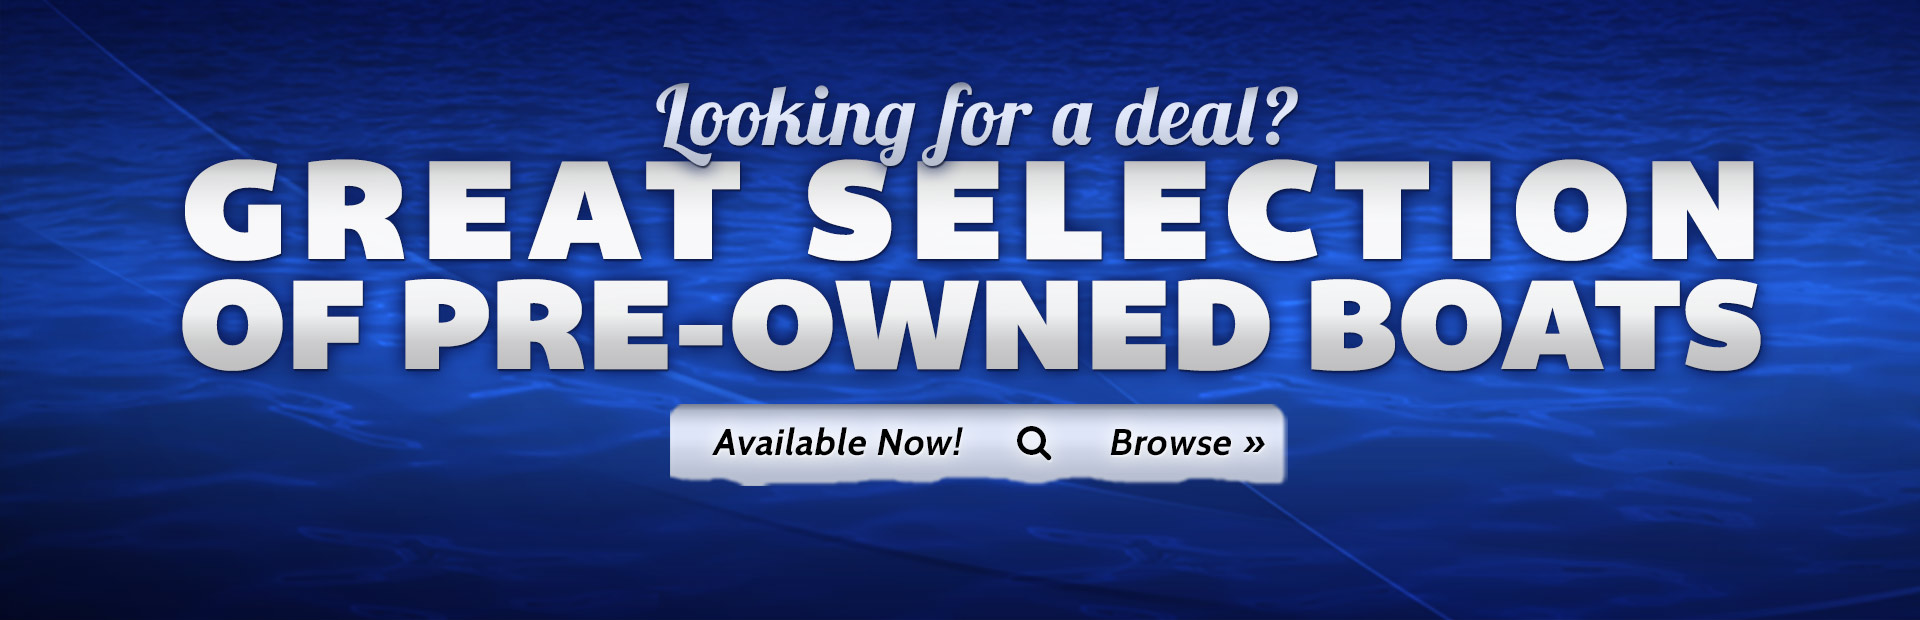 We have a great selection of pre-owned boats available now! Click here to shop.